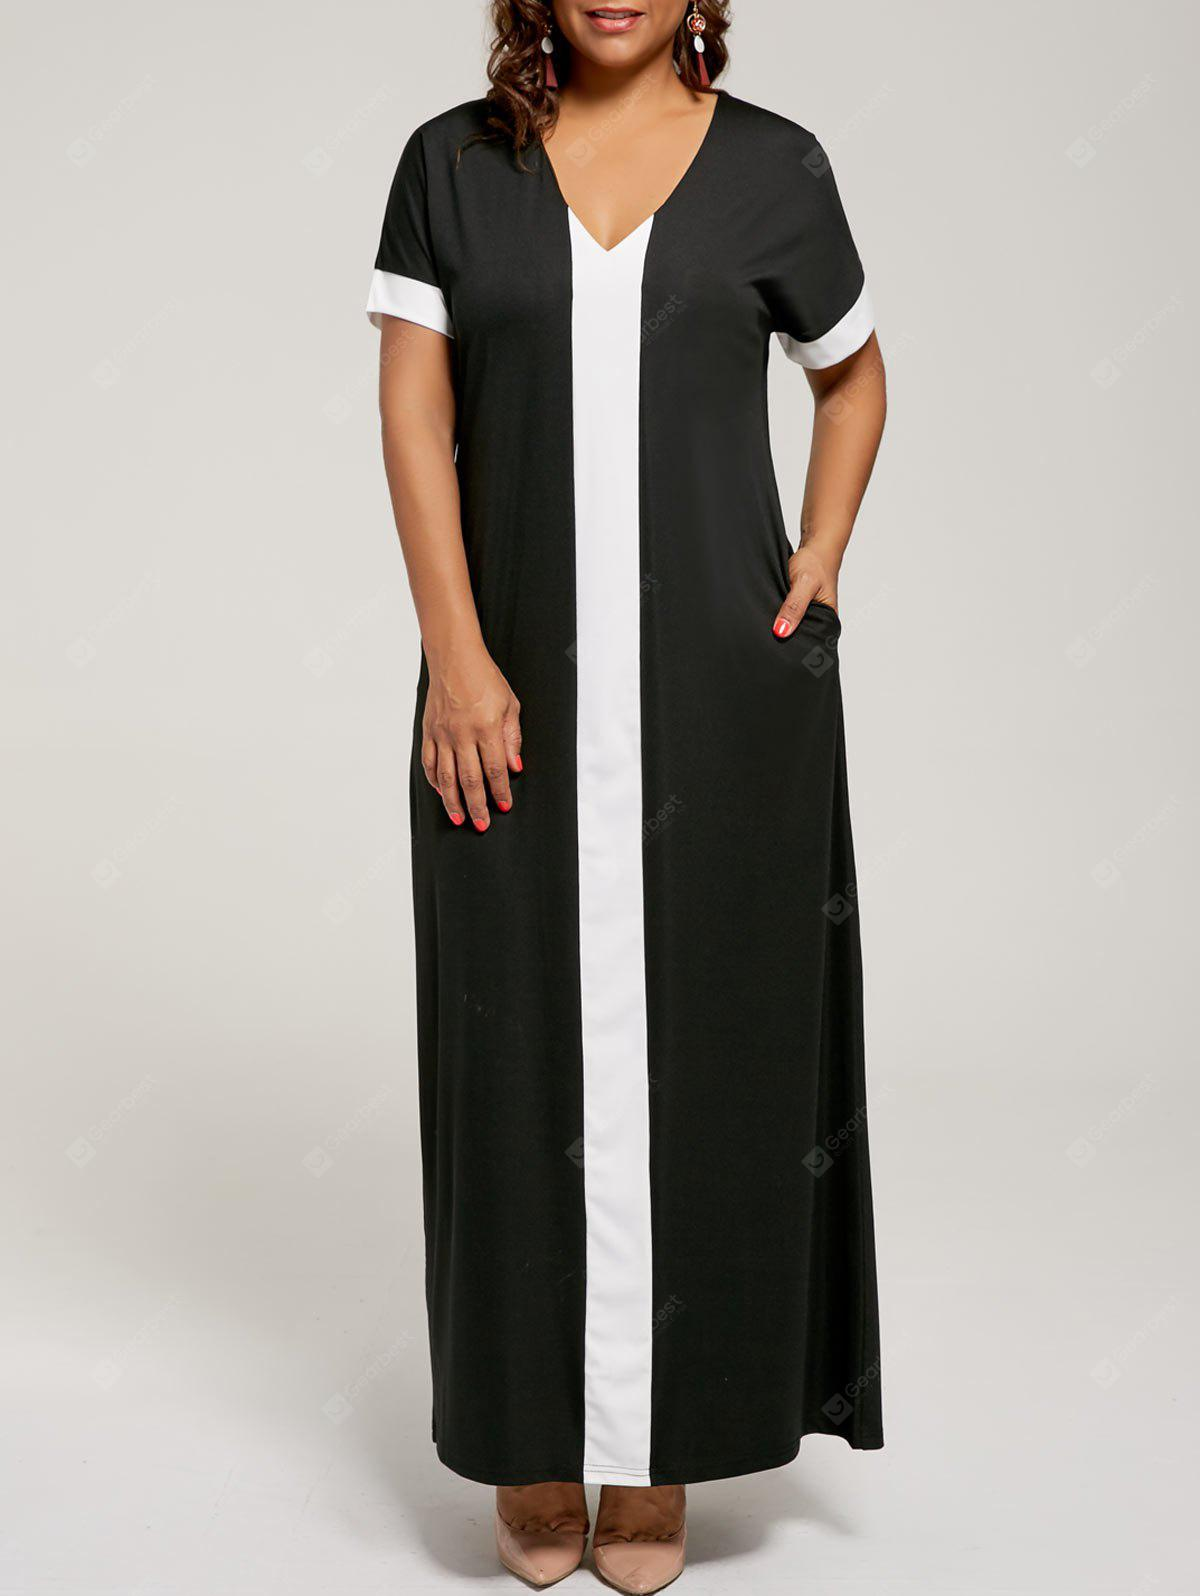 BLACK 4XL Contrast Plus Size Maxi Evening Dress with Pockets